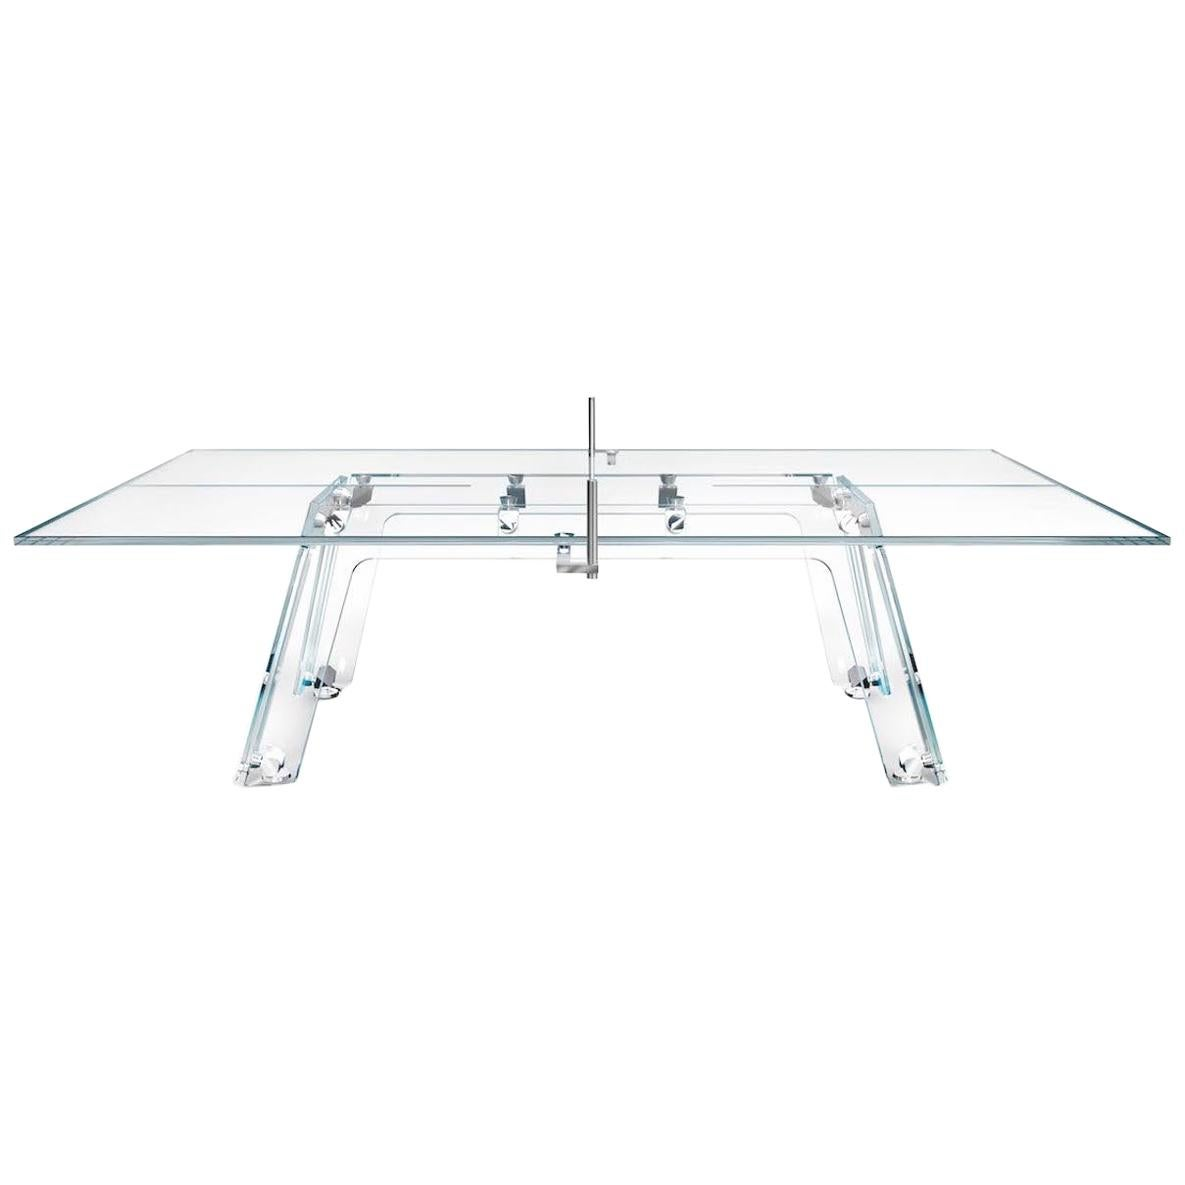 Lungolinea Chrome, Contemporary Design Table Tennis/ Ping Pong Table by Impatia